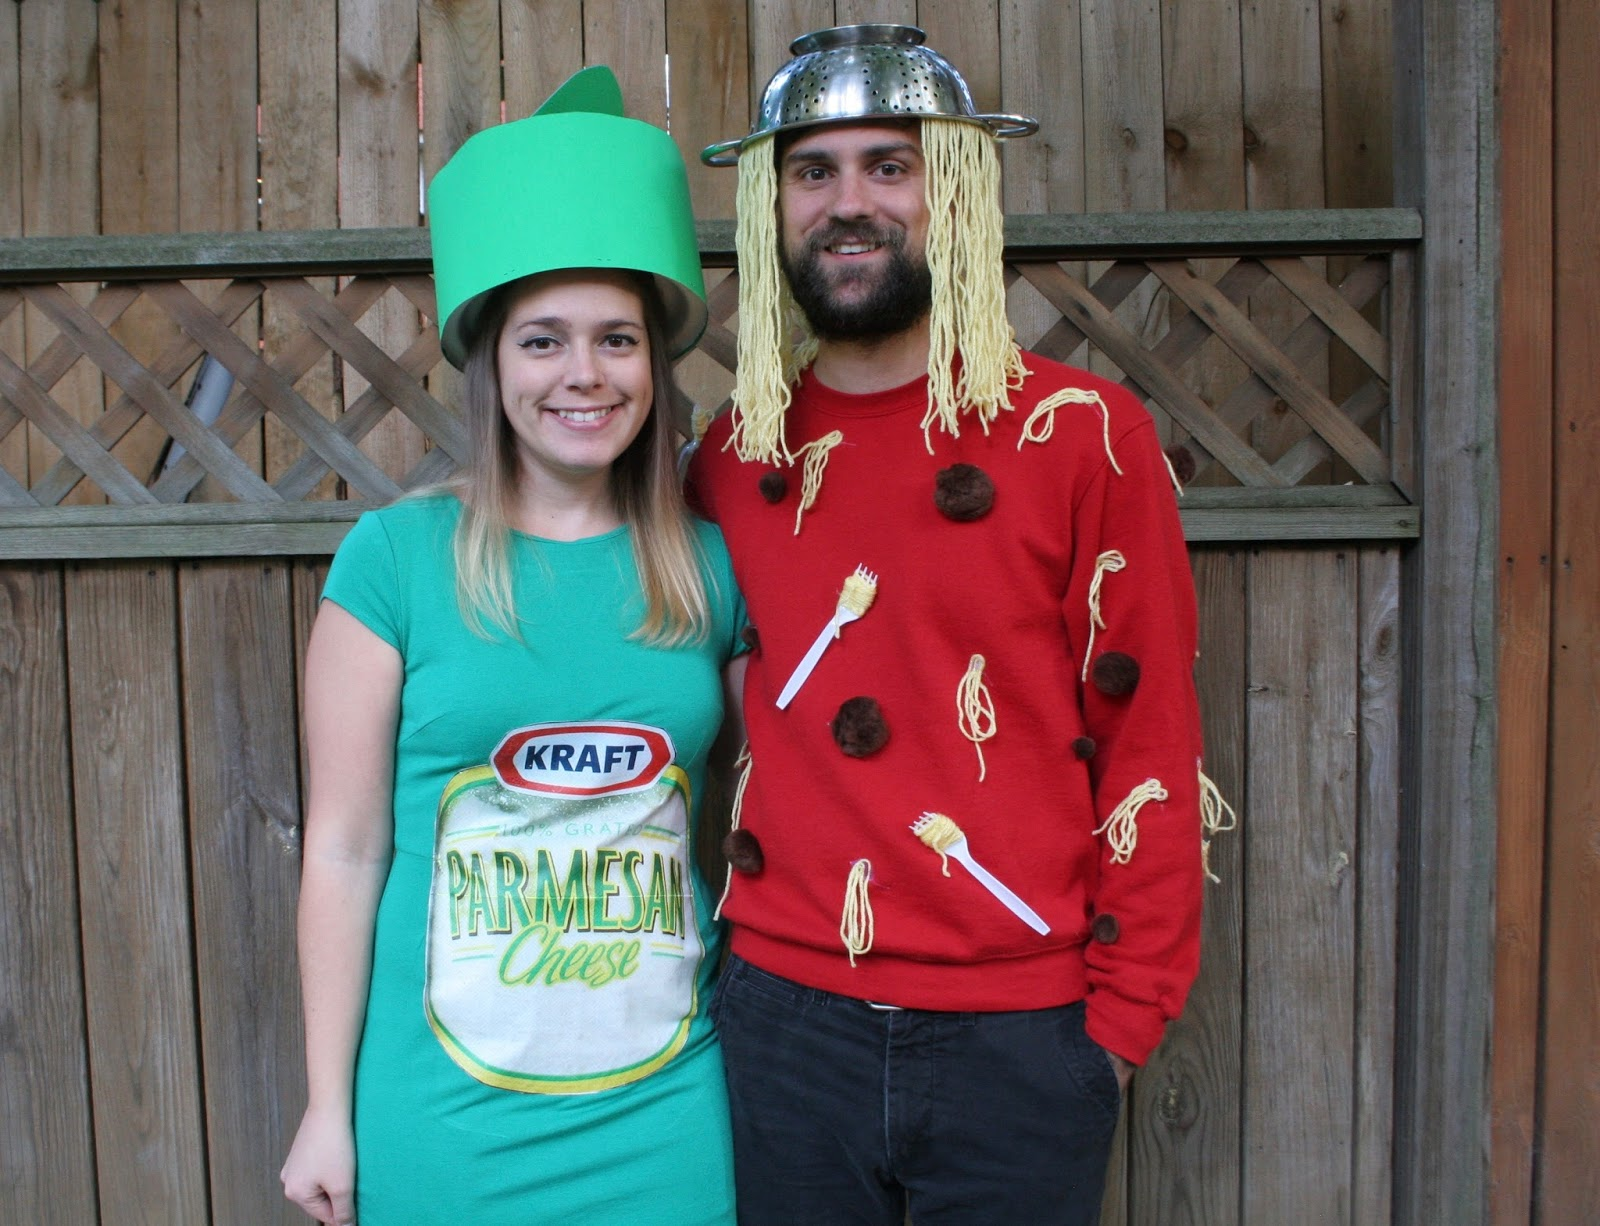 Couples Halloween Costume Ideas.Our Halloween Costumes Spaghetti Parmesan Cheese The Surznick